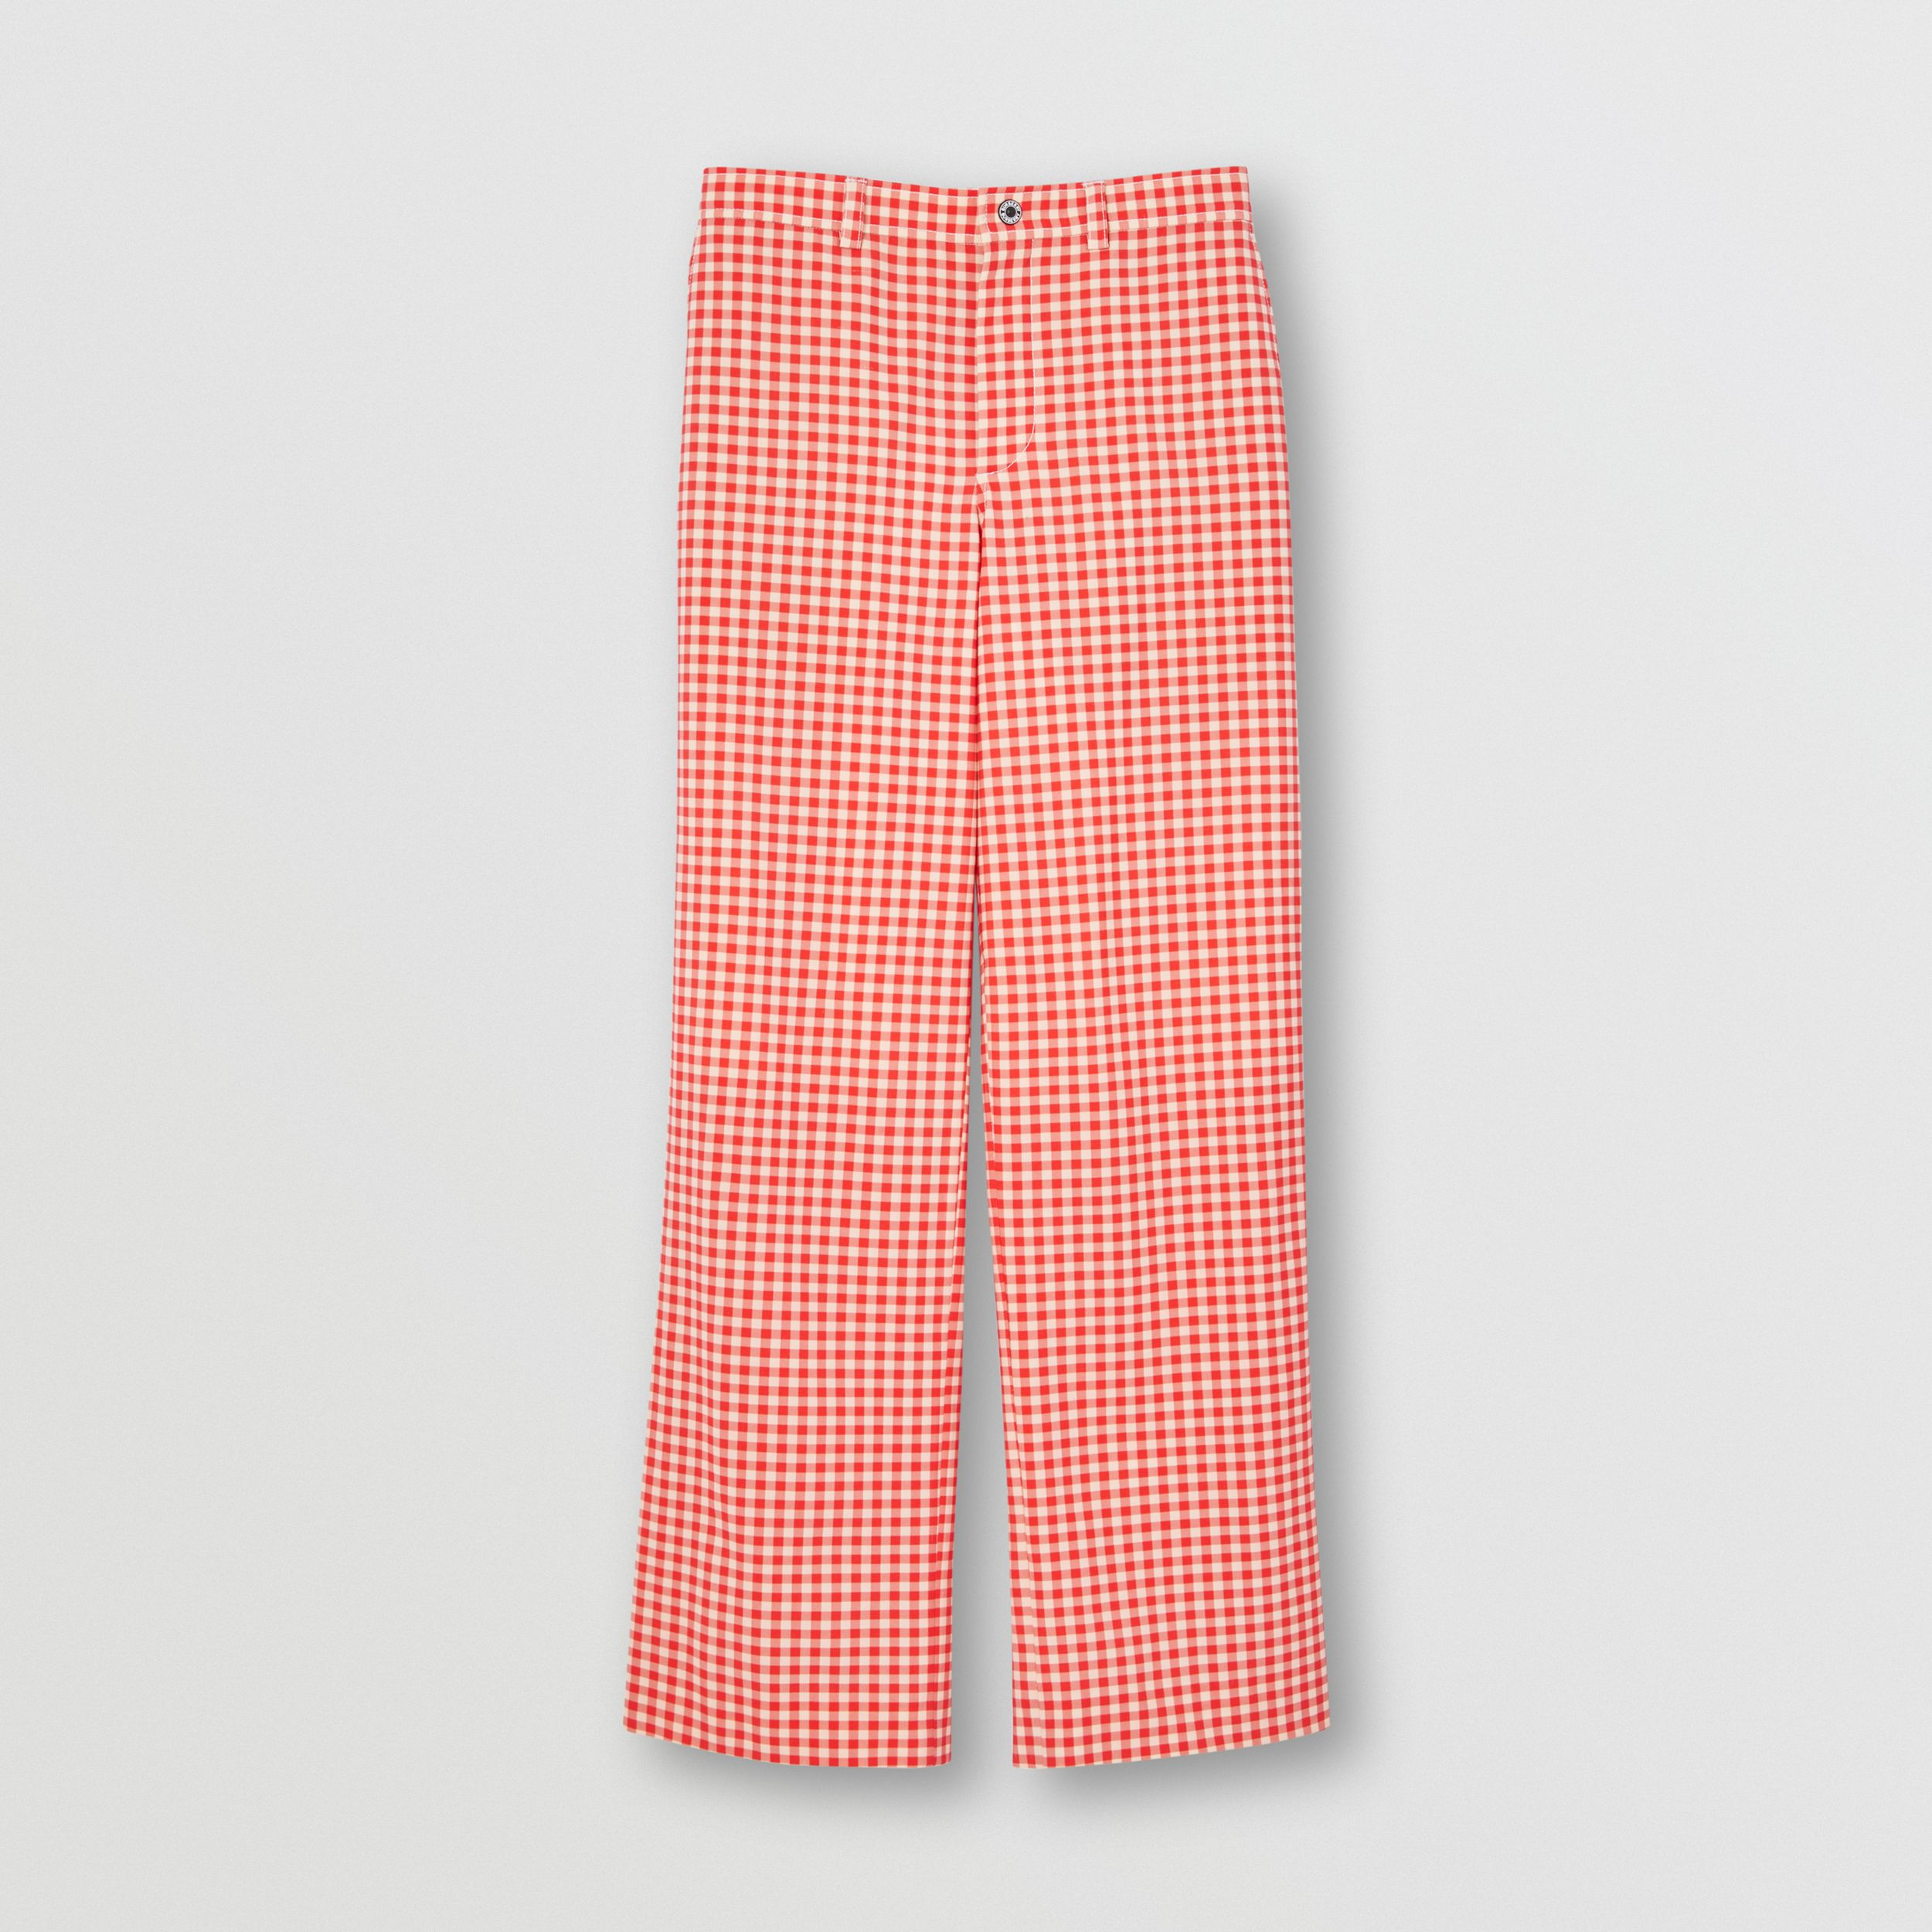 Cut-out Back Gingham Stretch Cotton Trousers in Red - Men | Burberry Singapore - 4